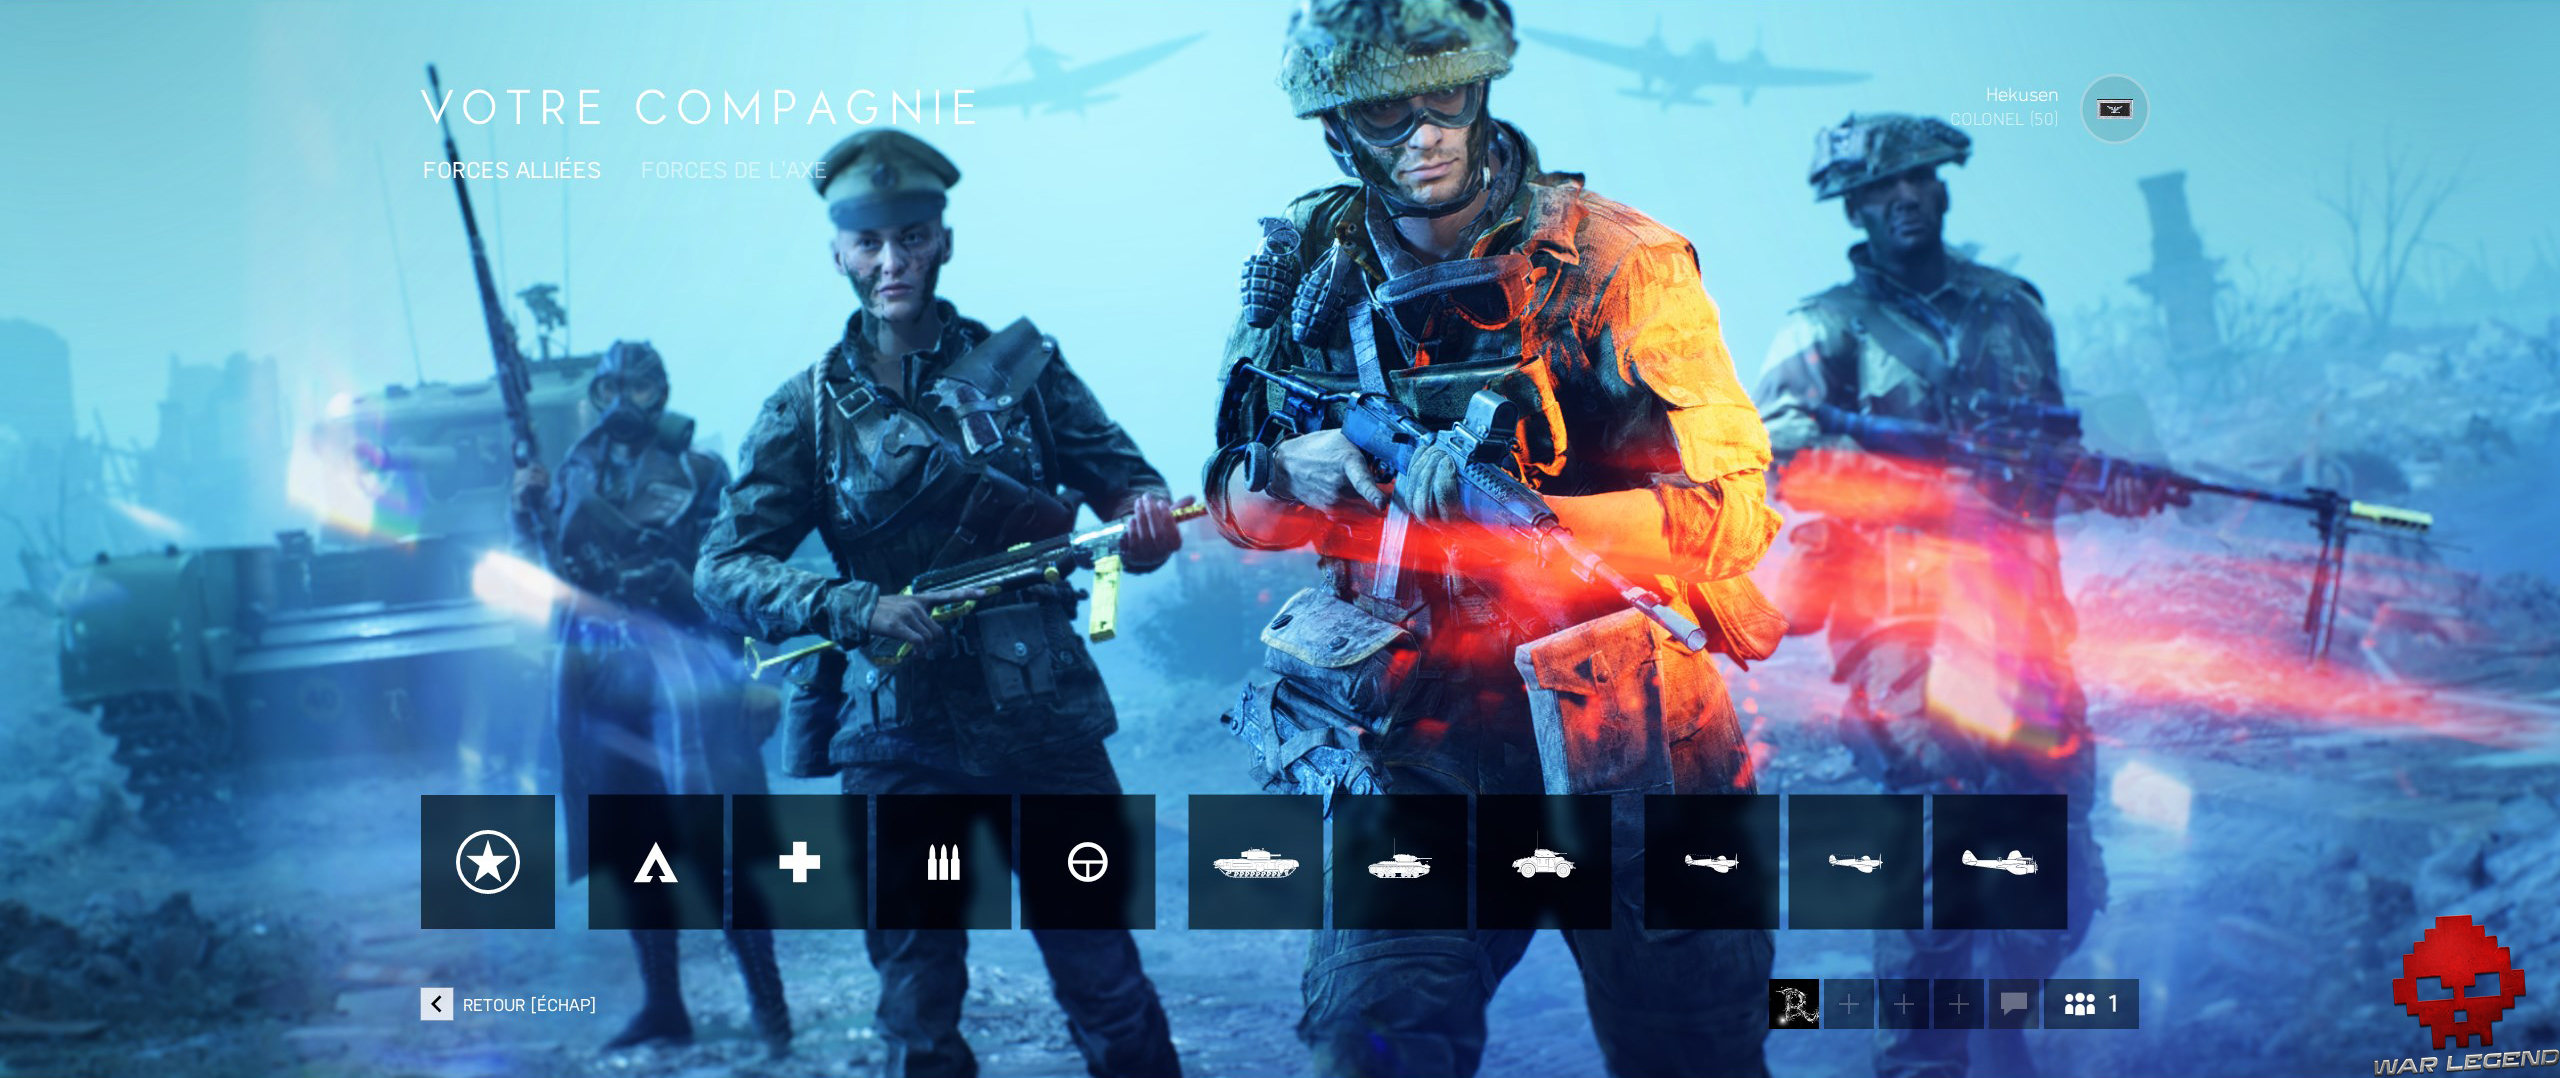 Retest battlefield V compagnie